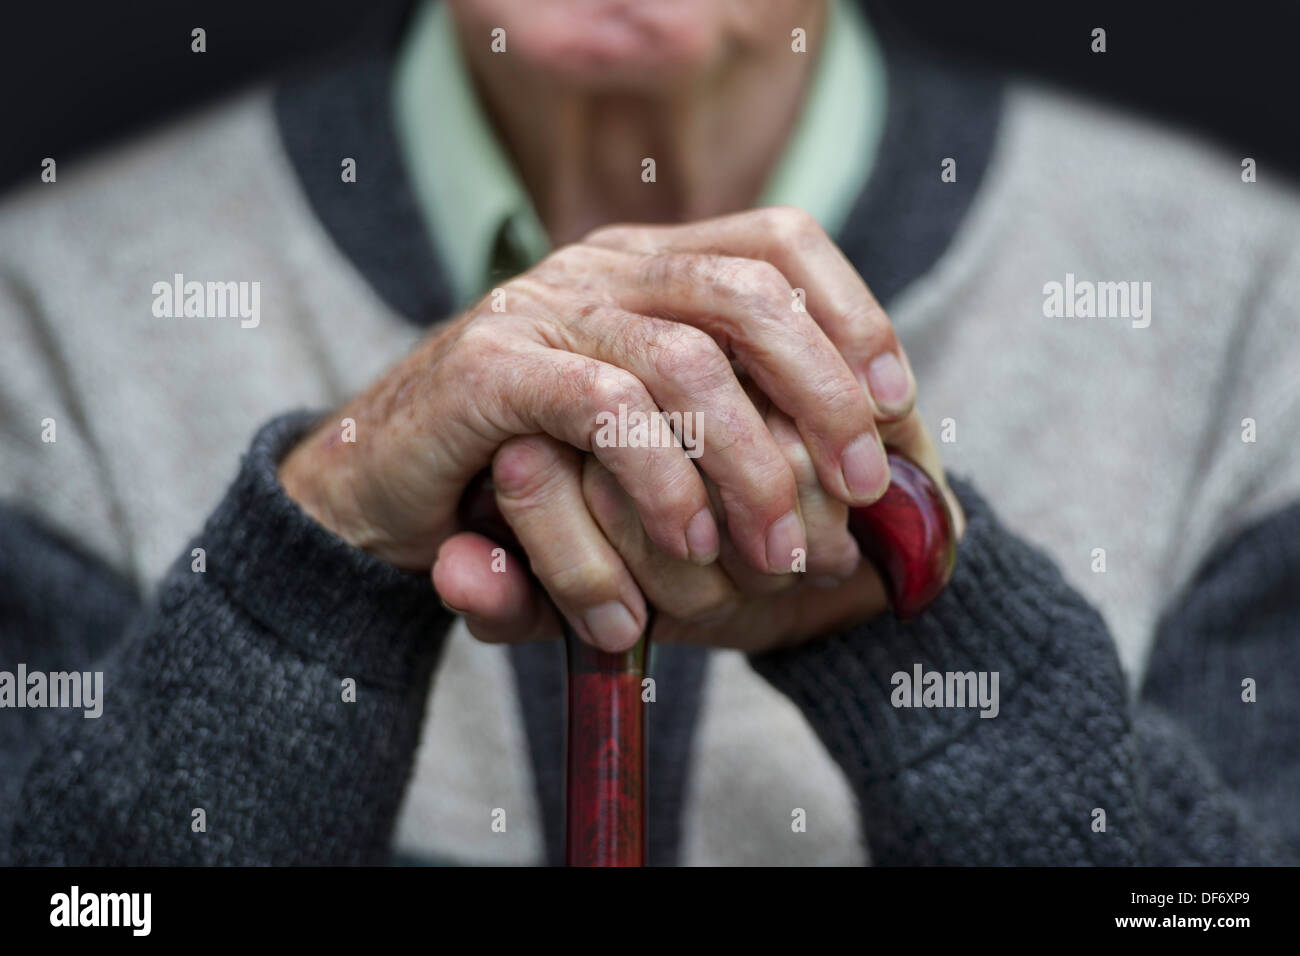 An elderly old age pensioner sits with his hands on a walking stick in a care home. - Stock Image